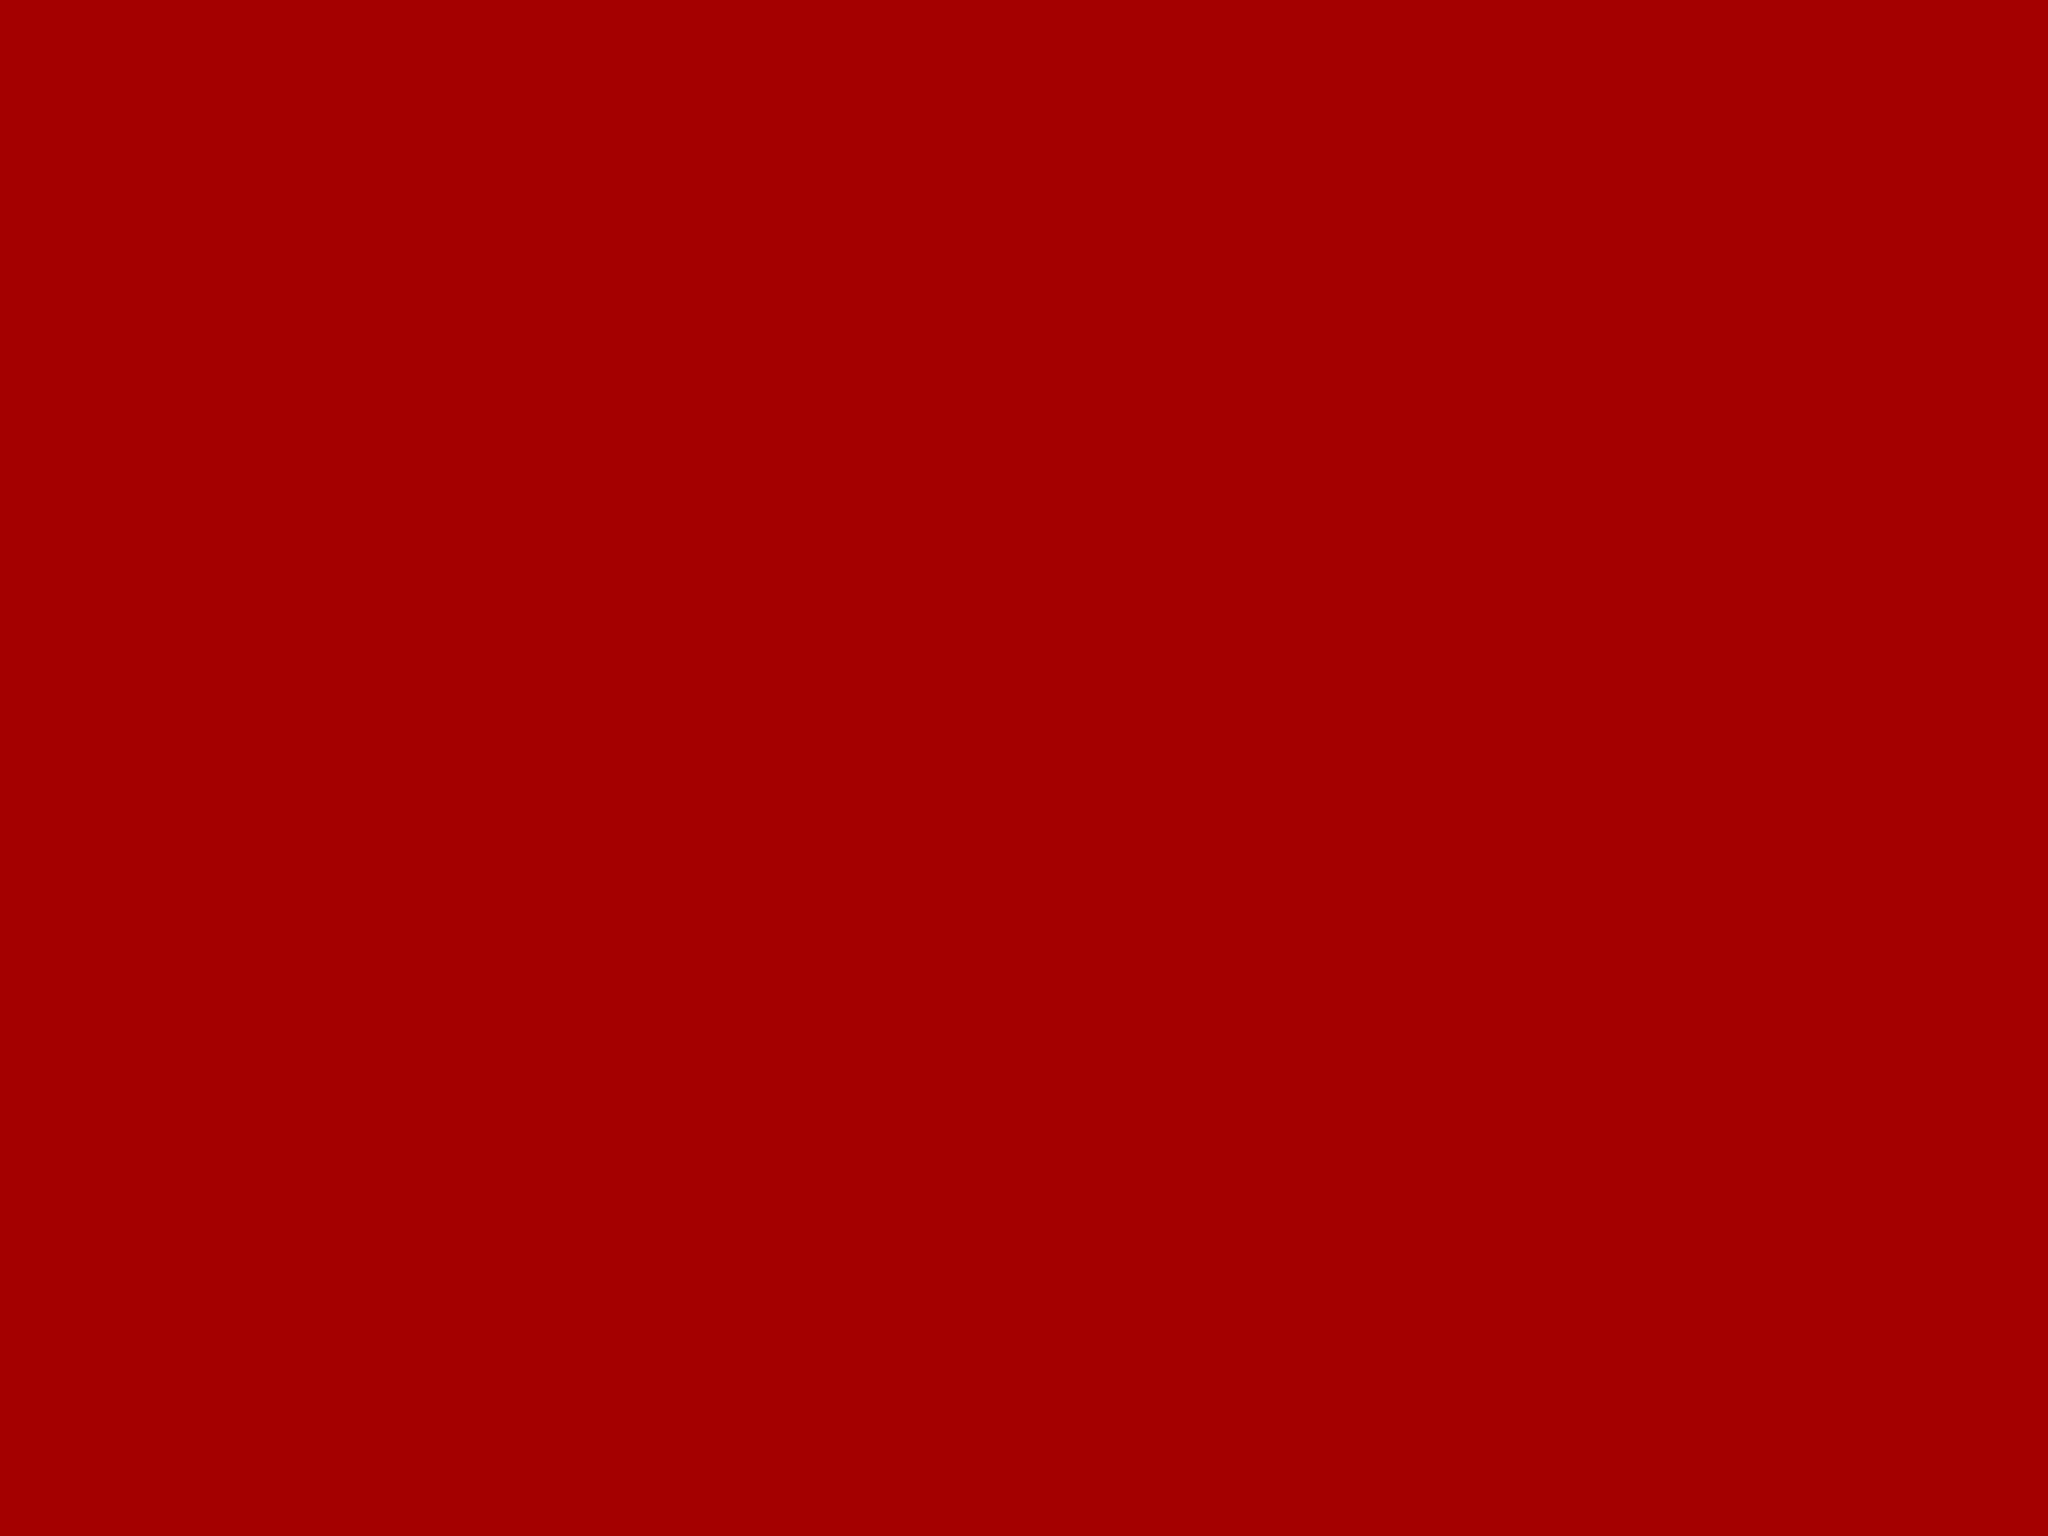 2048x1536 Dark Candy Apple Red Solid Color Background